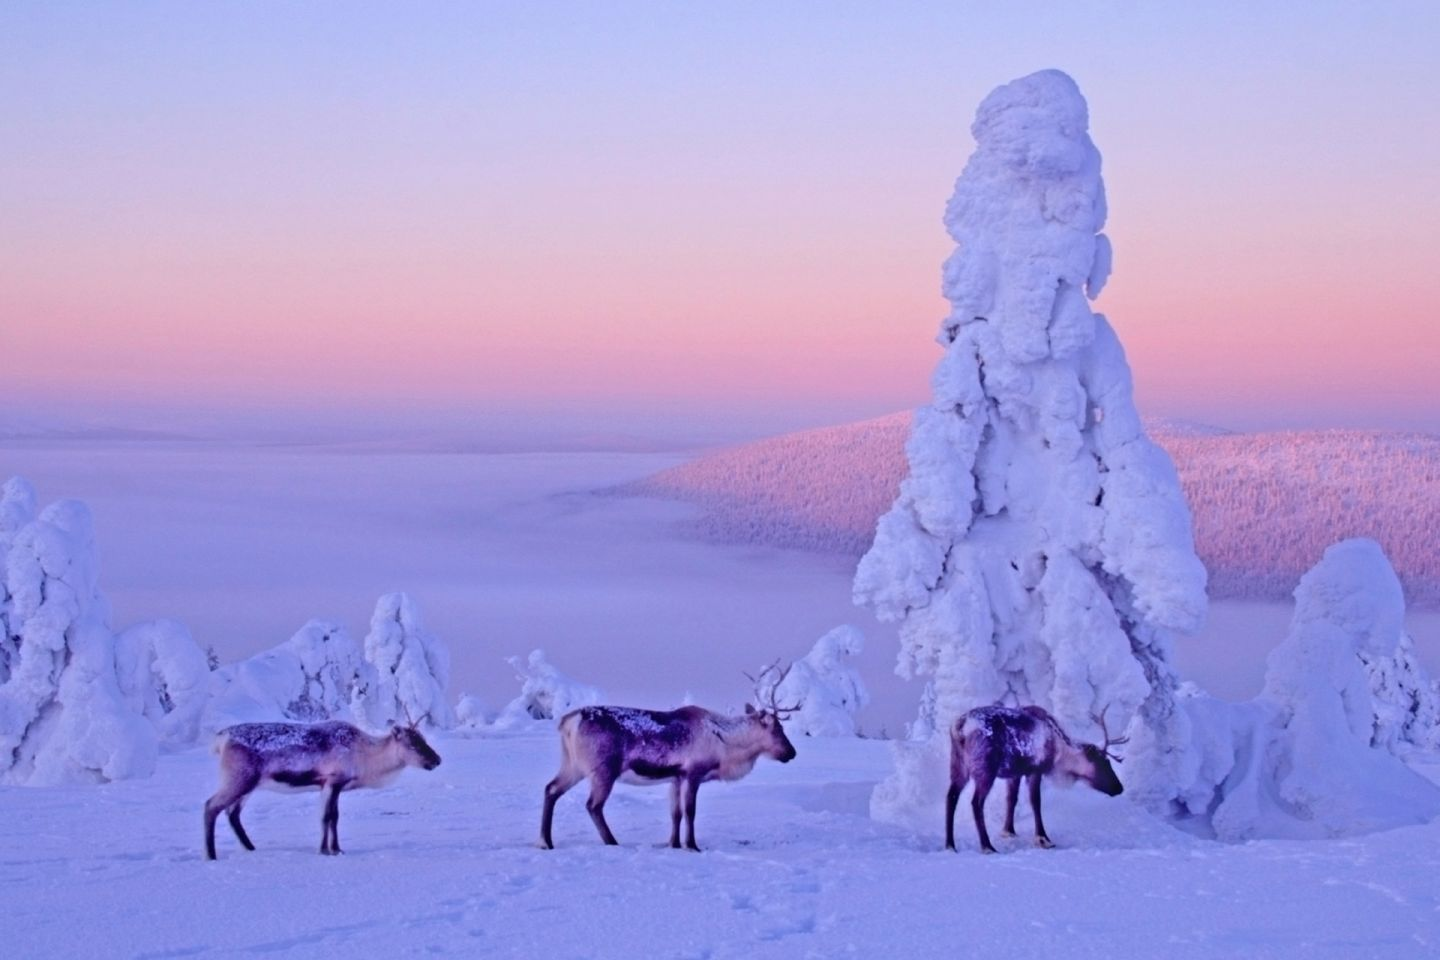 Reindeer in a morning mist in snowy lanscape, Levi Kittilä, Lapland